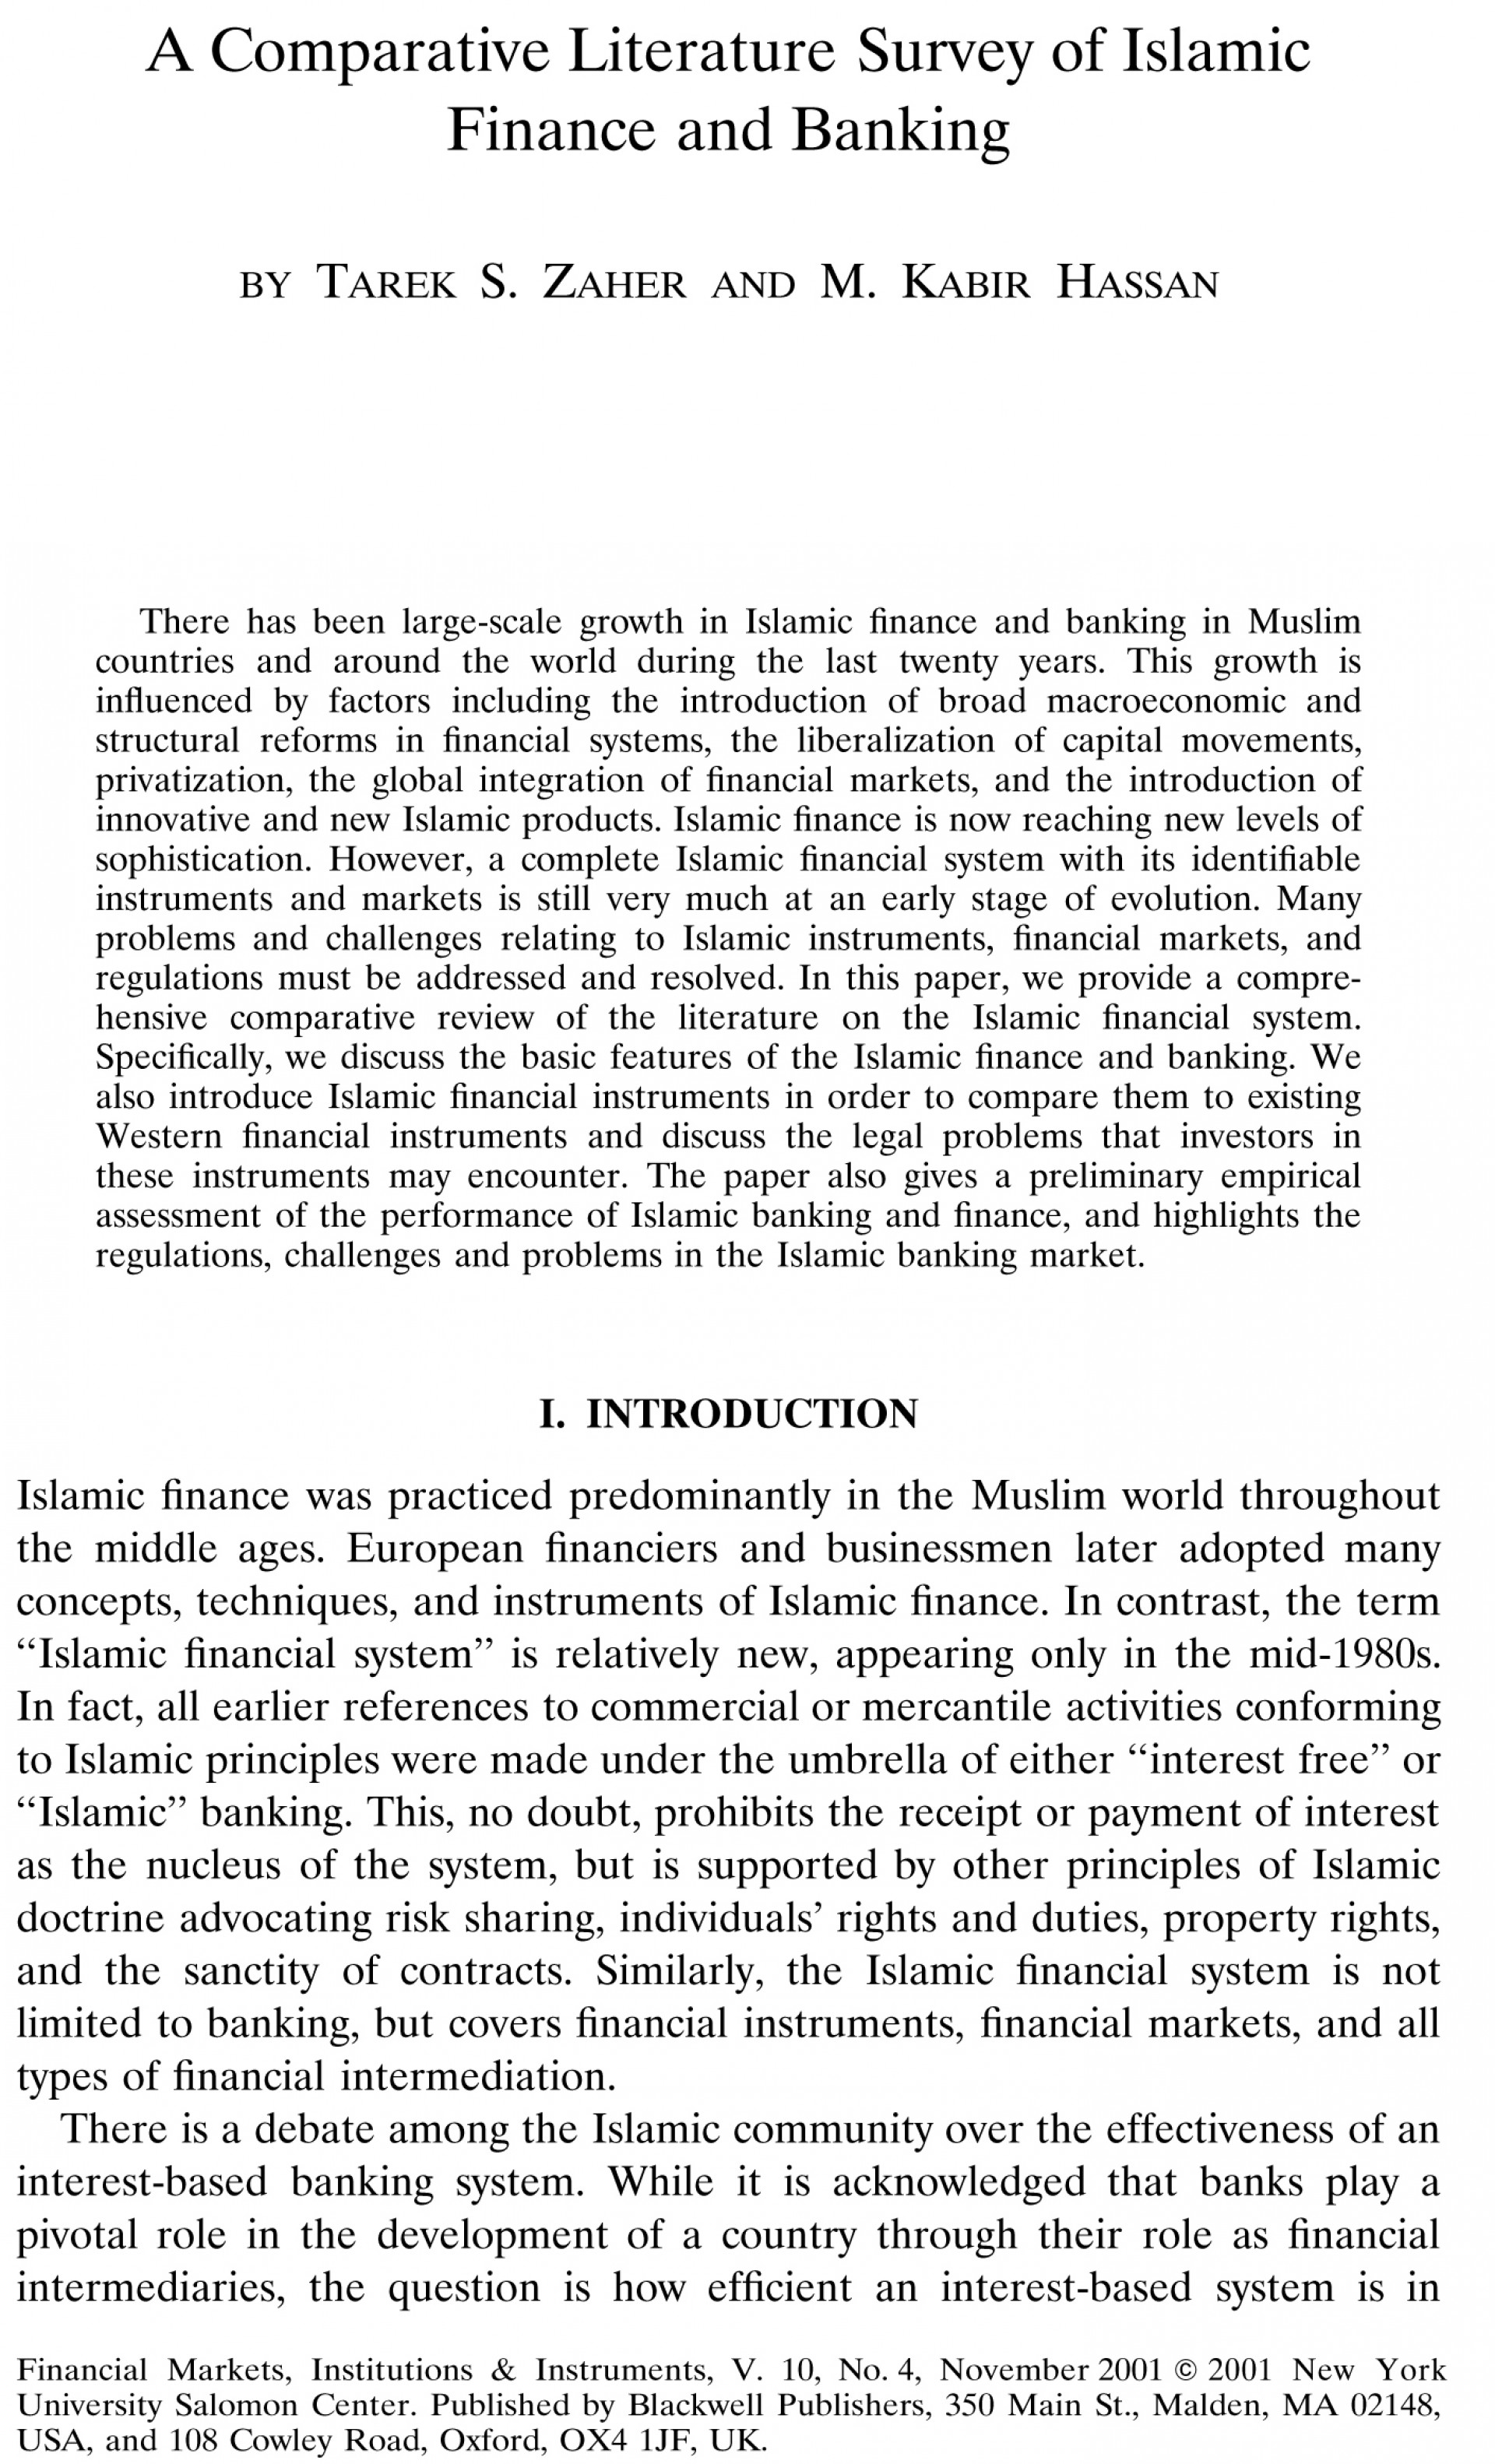 005 Research Papers Free Paper Comparative Literature Sample Imposing Hrm Download Pdf On Freedom Of Speech And Expression Religion 1920